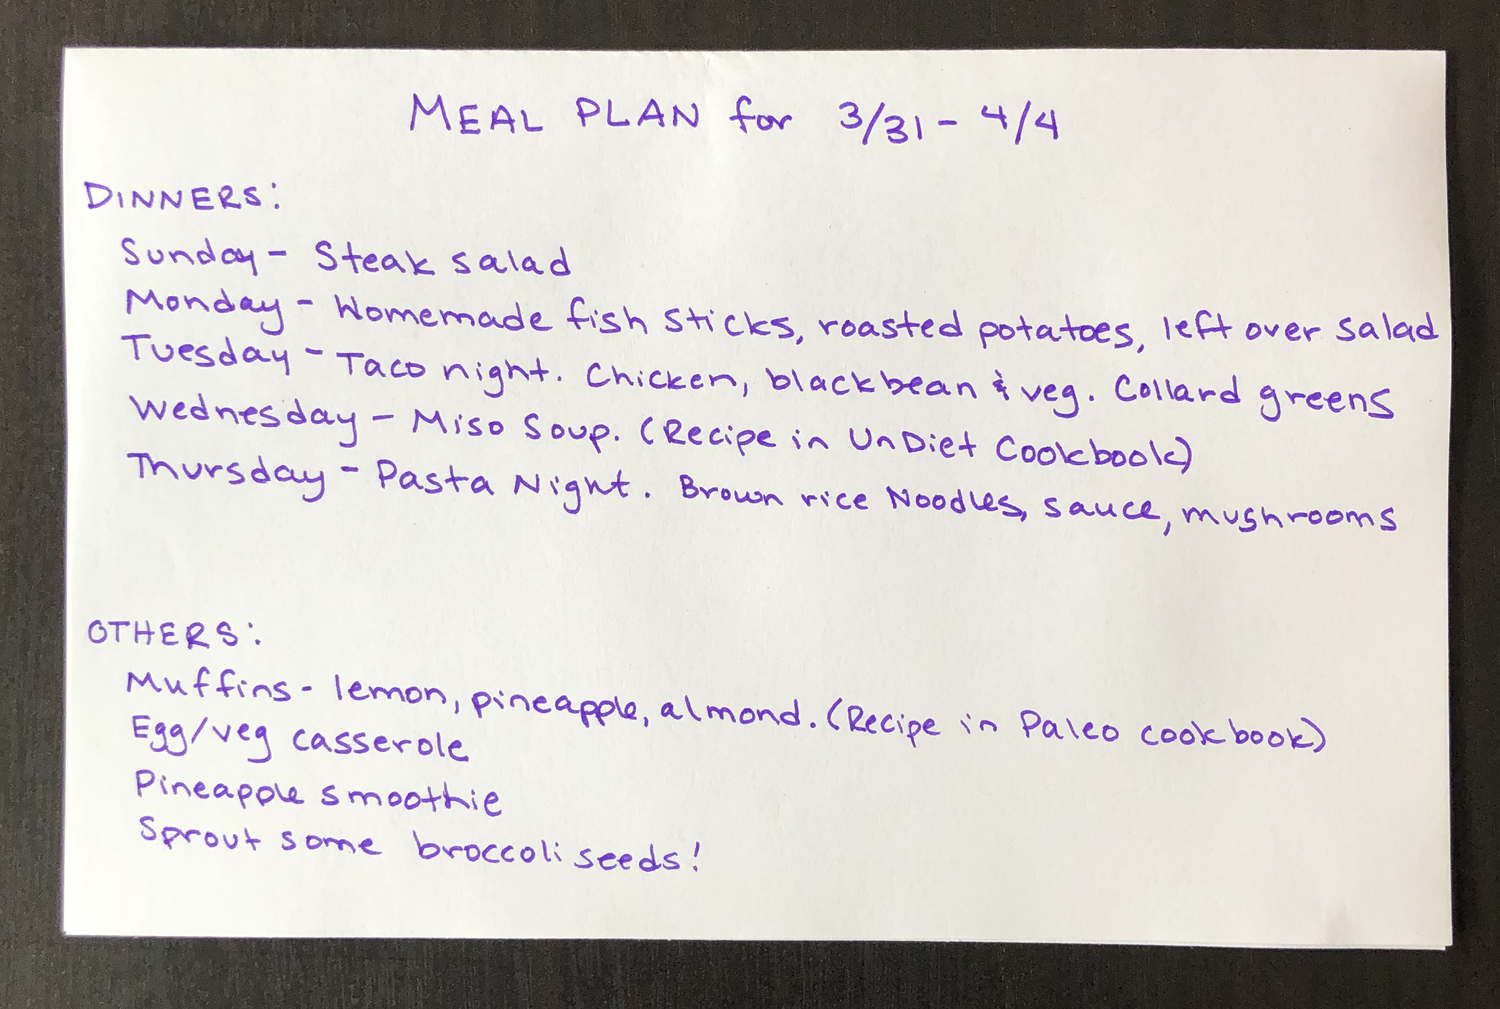 3-ways-to-spend-less-time-shopping-meal-plan.jpg